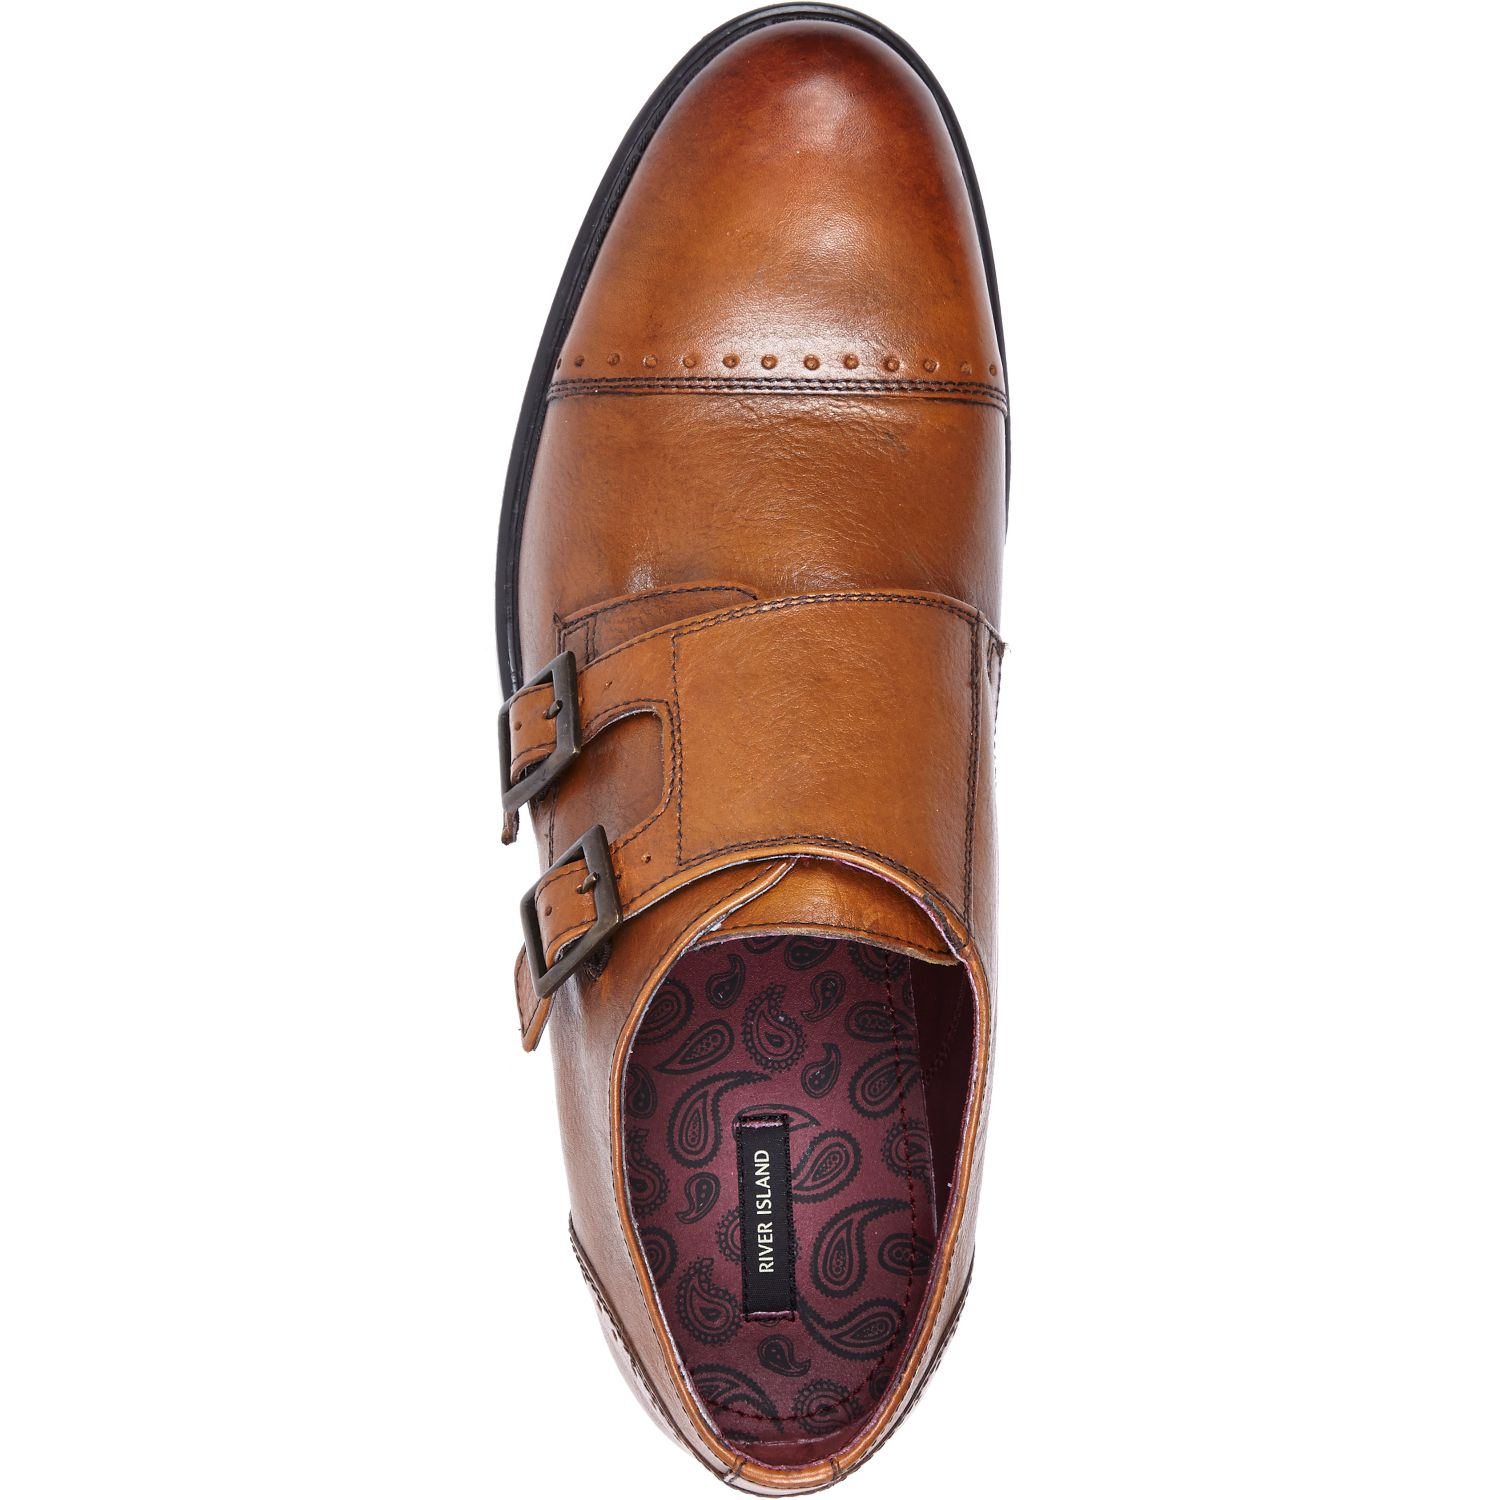 eb3f54f30d4 River Island Tan Double Monk Strap Shoes in Brown for Men - Lyst